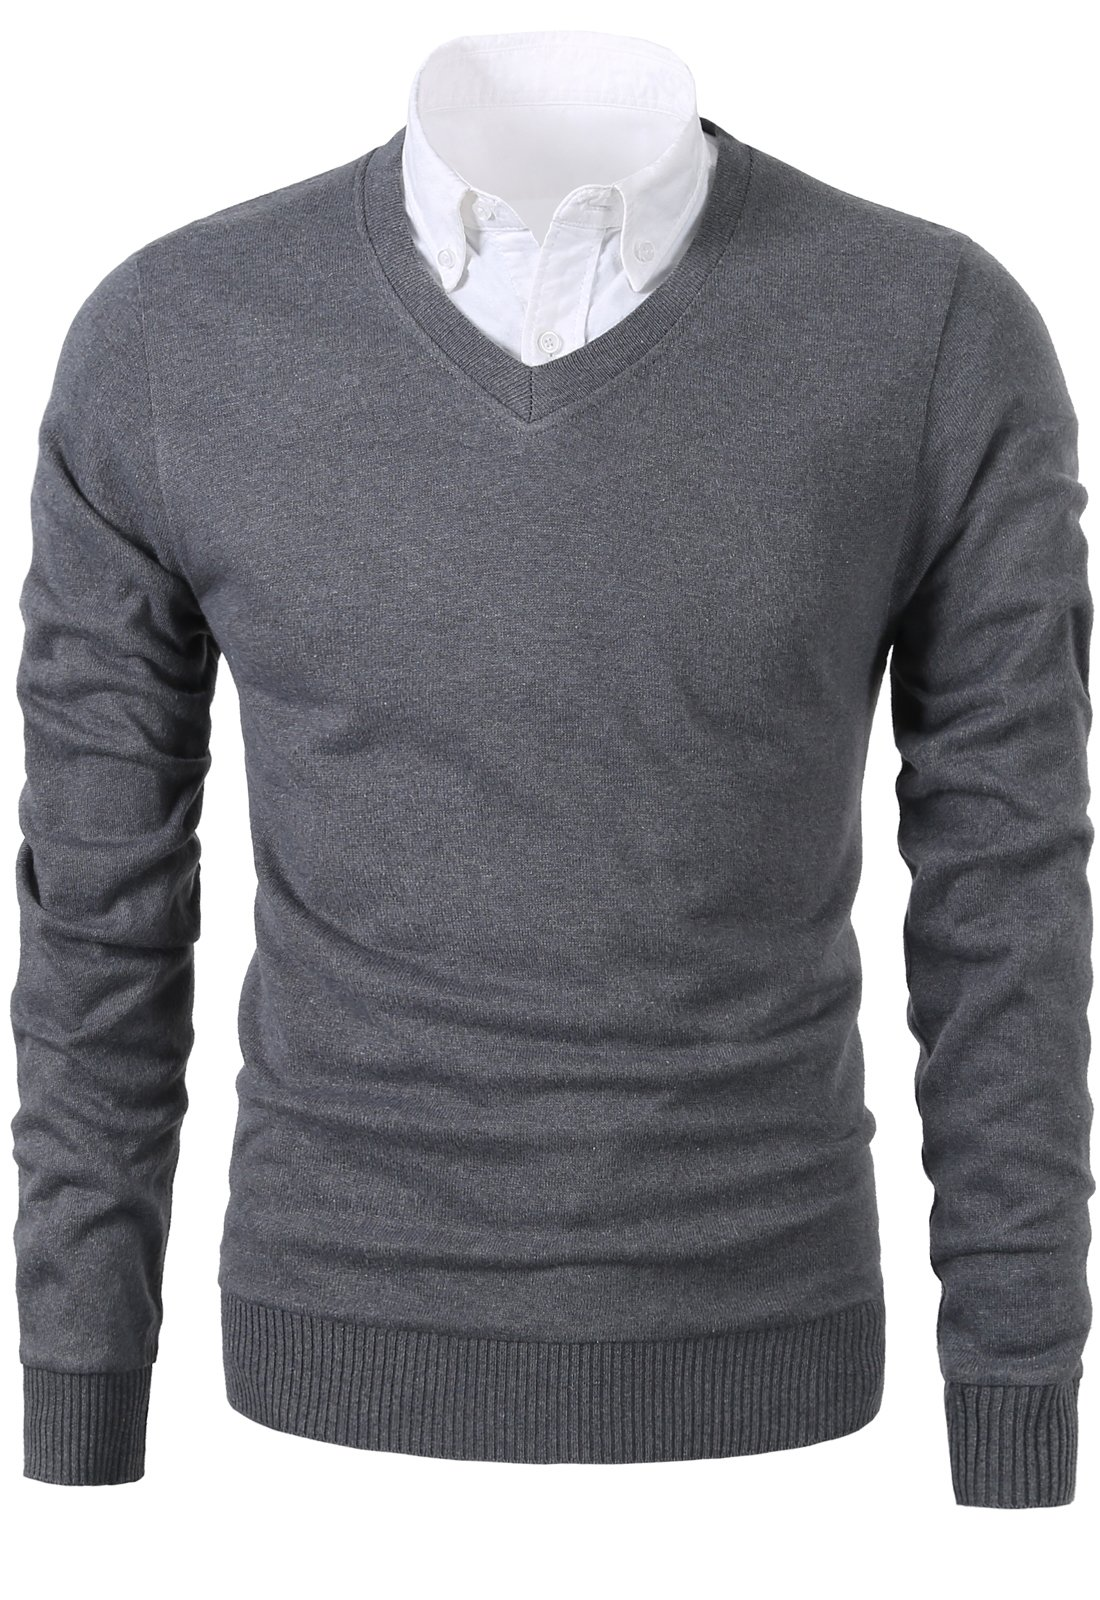 Mesahara Mens Slim Fit Light Weight V-Neck Pullover Sweater (S, Grey) by Mesahara